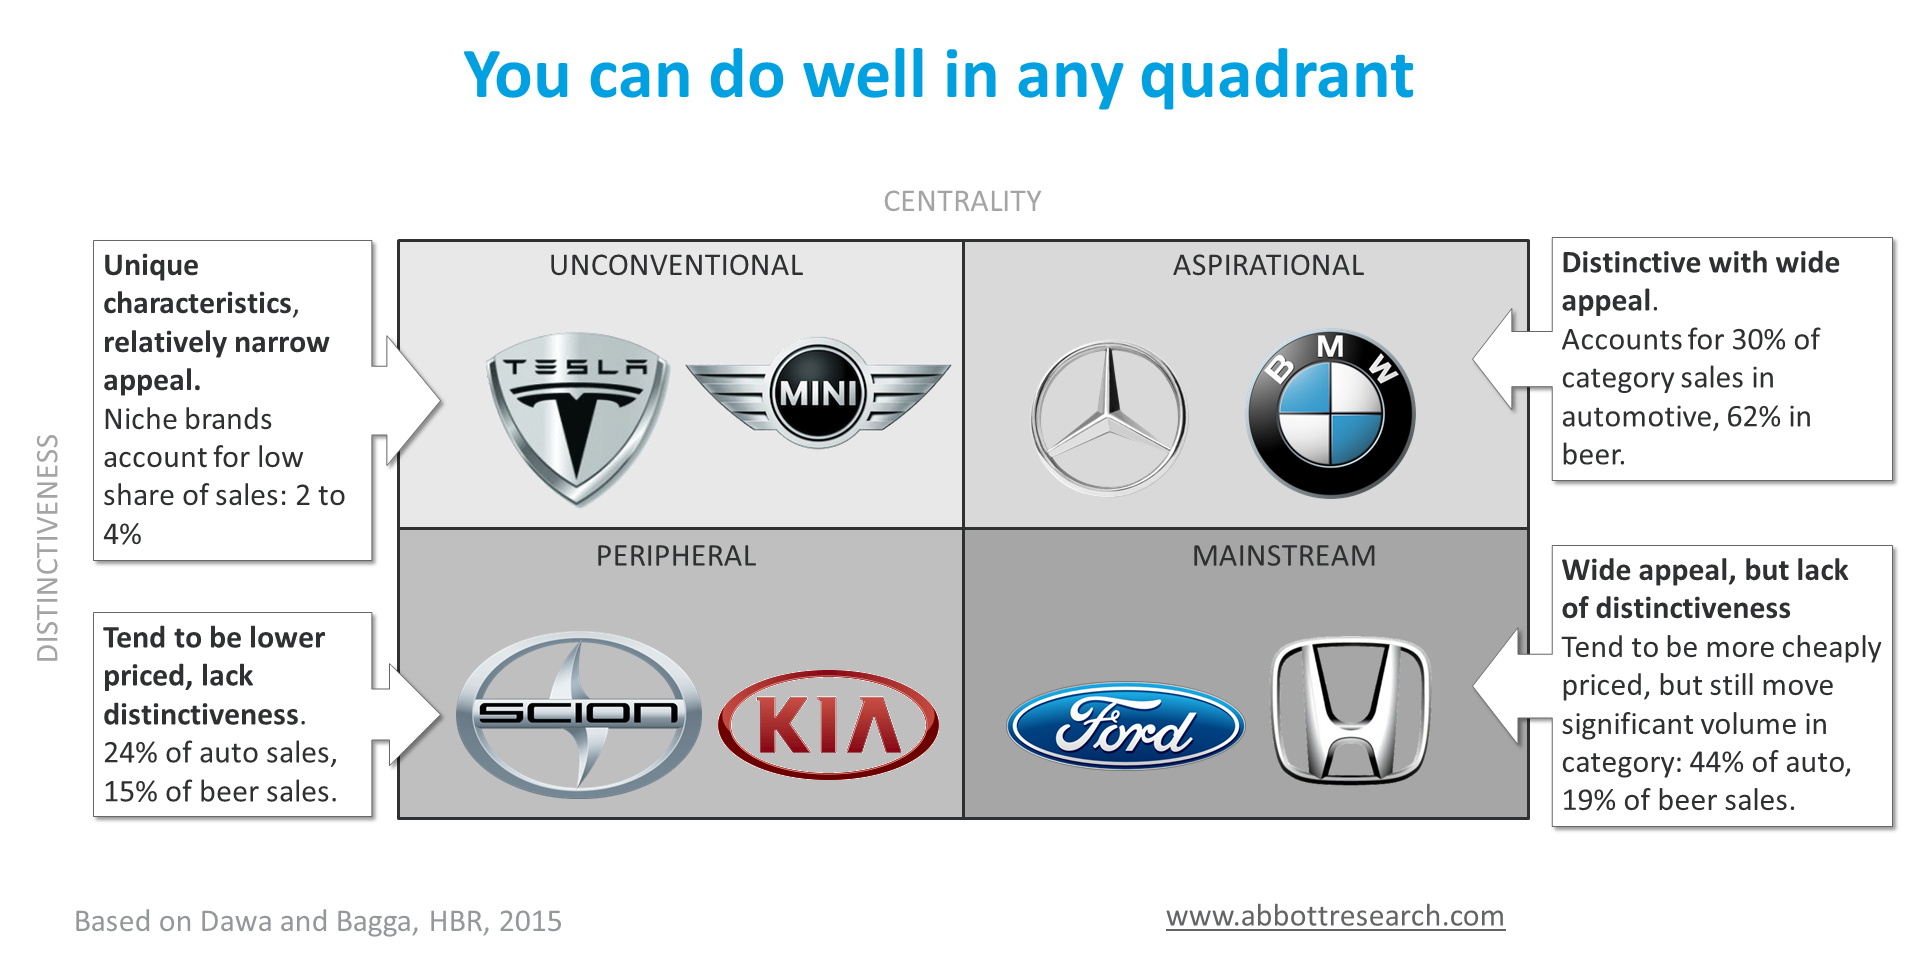 quadrant descriptions and brand logos